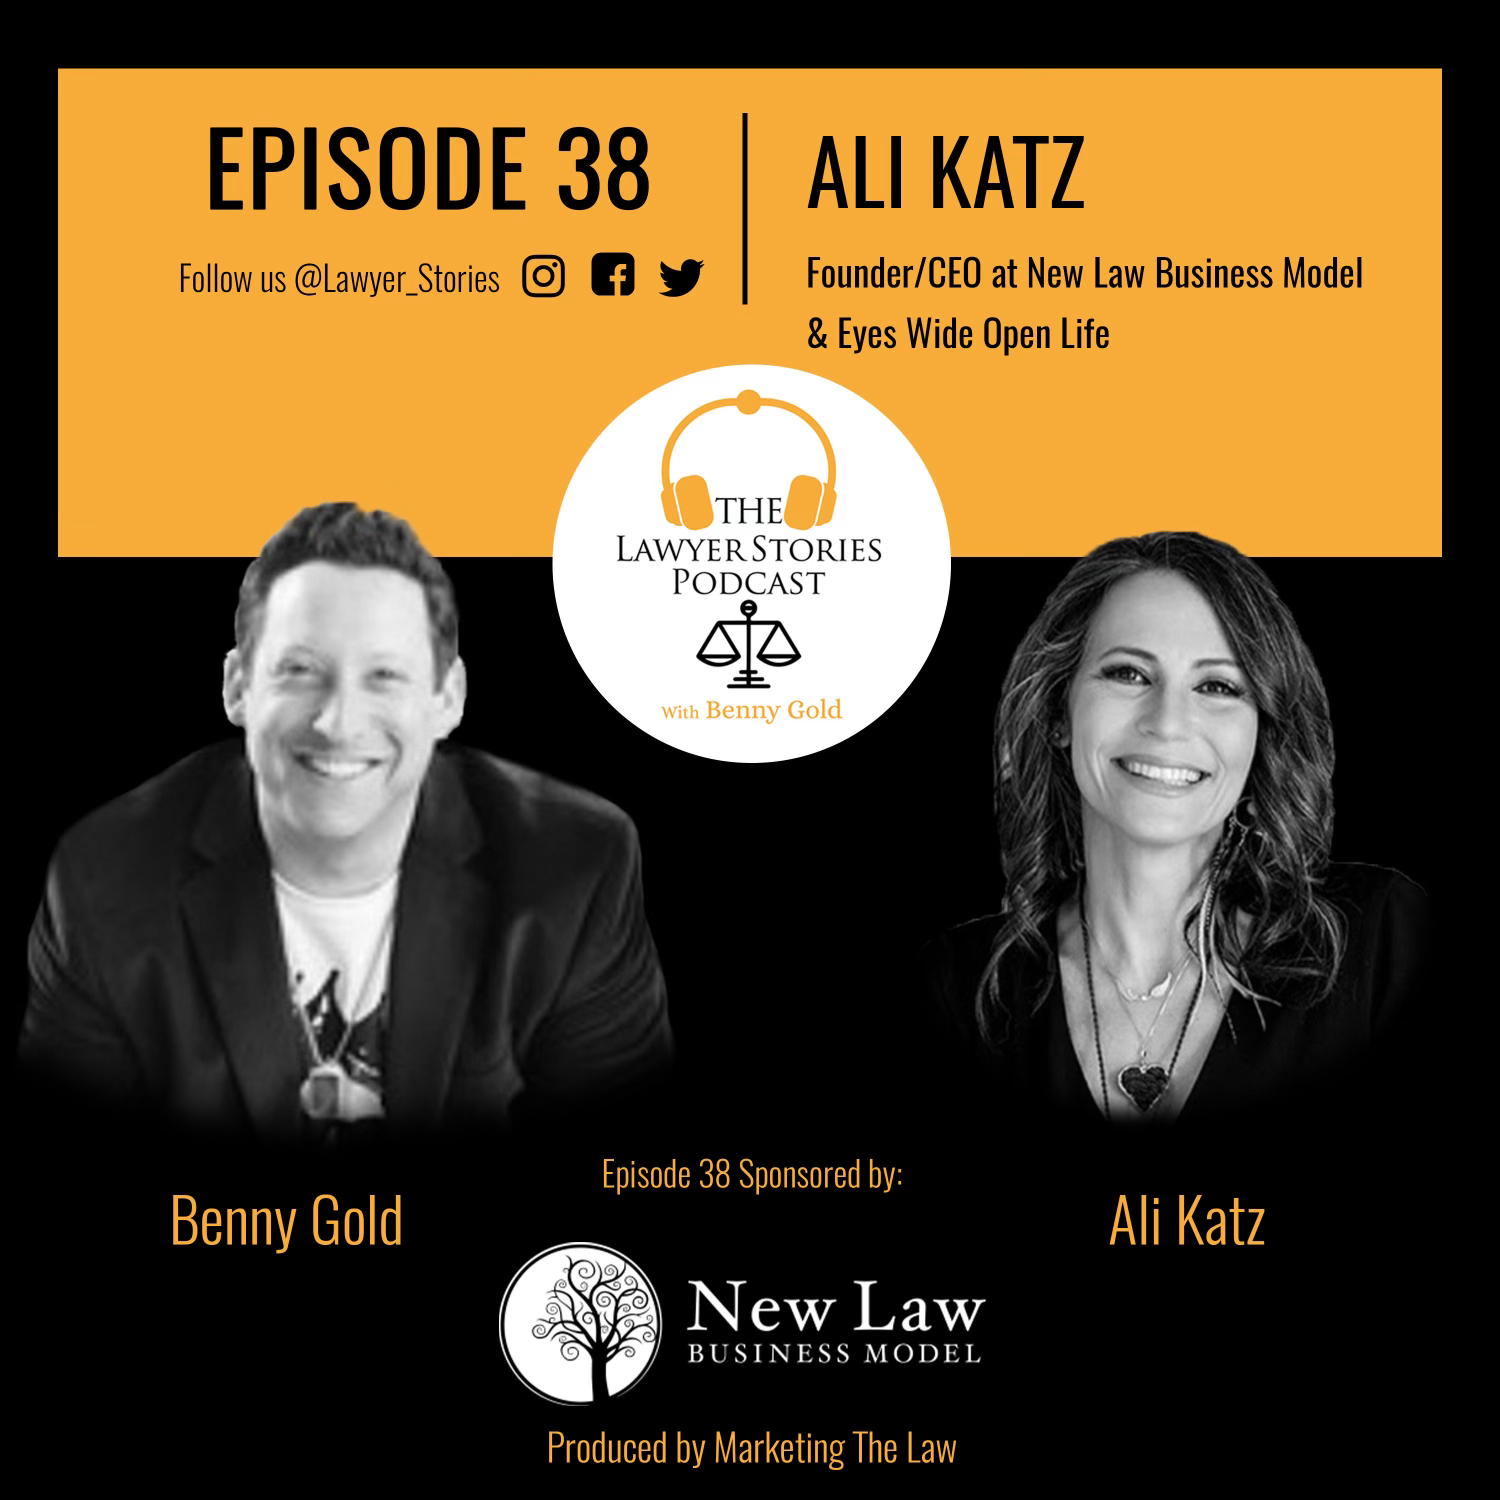 The Lawyer Stories Podcast Episode 38 featuring Ali Katz